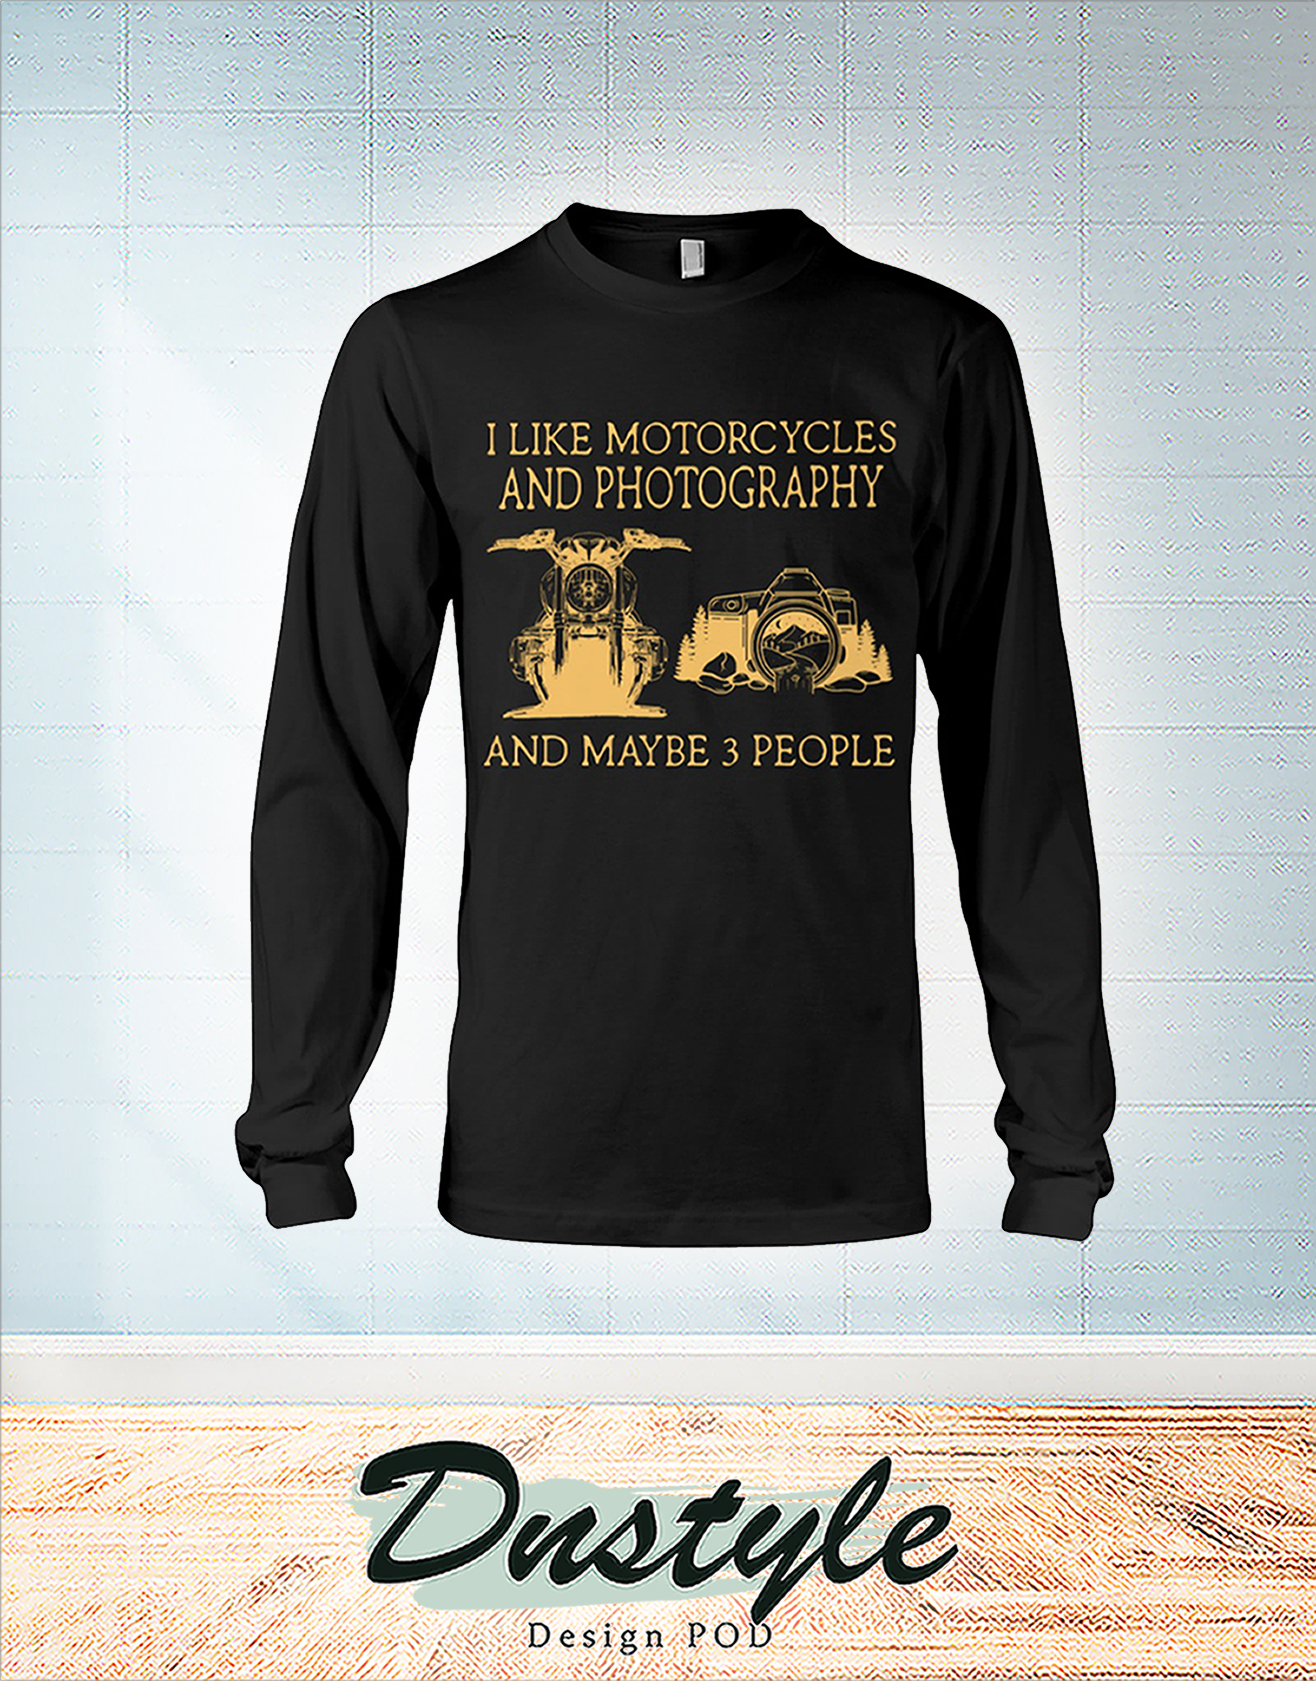 I like motorcycles and photography and maybe 3 people long sleeve